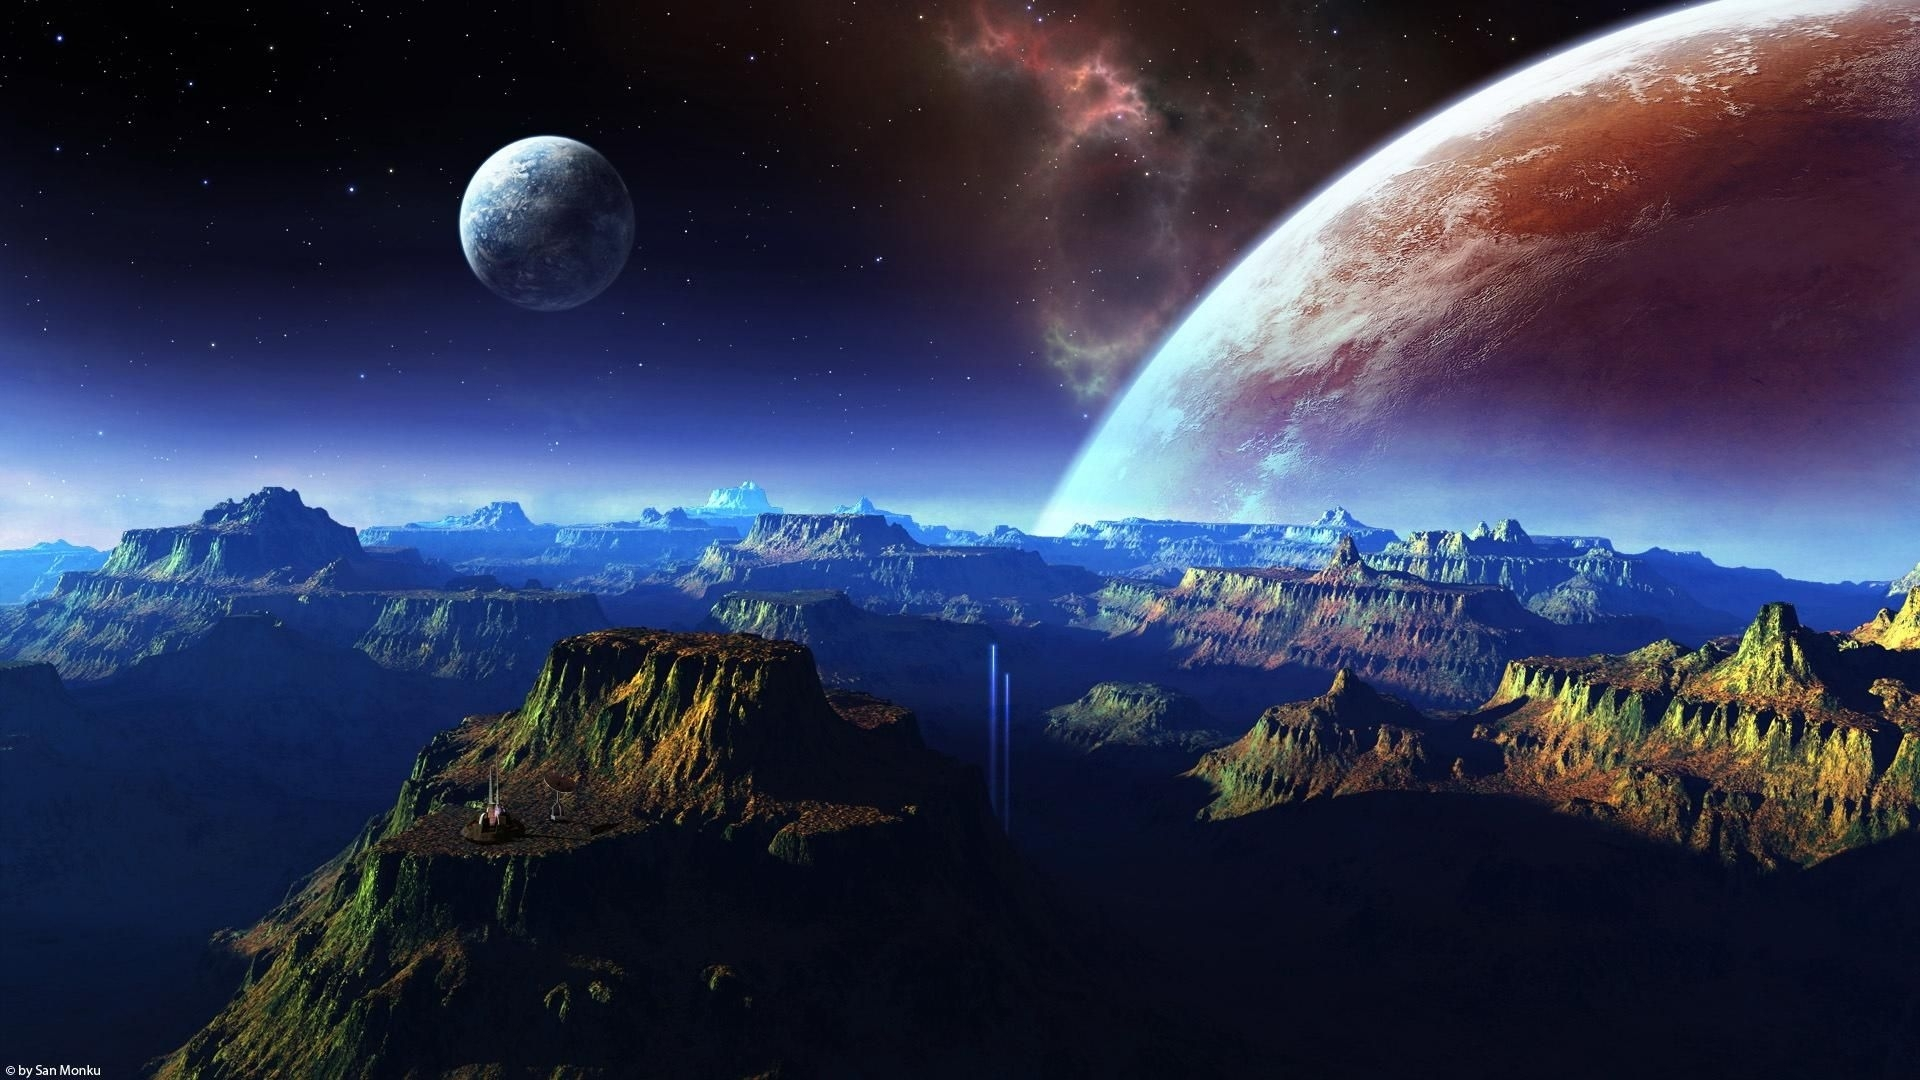 space hd wallpapers 1080p - wallpaper cave | epic car wallpapers